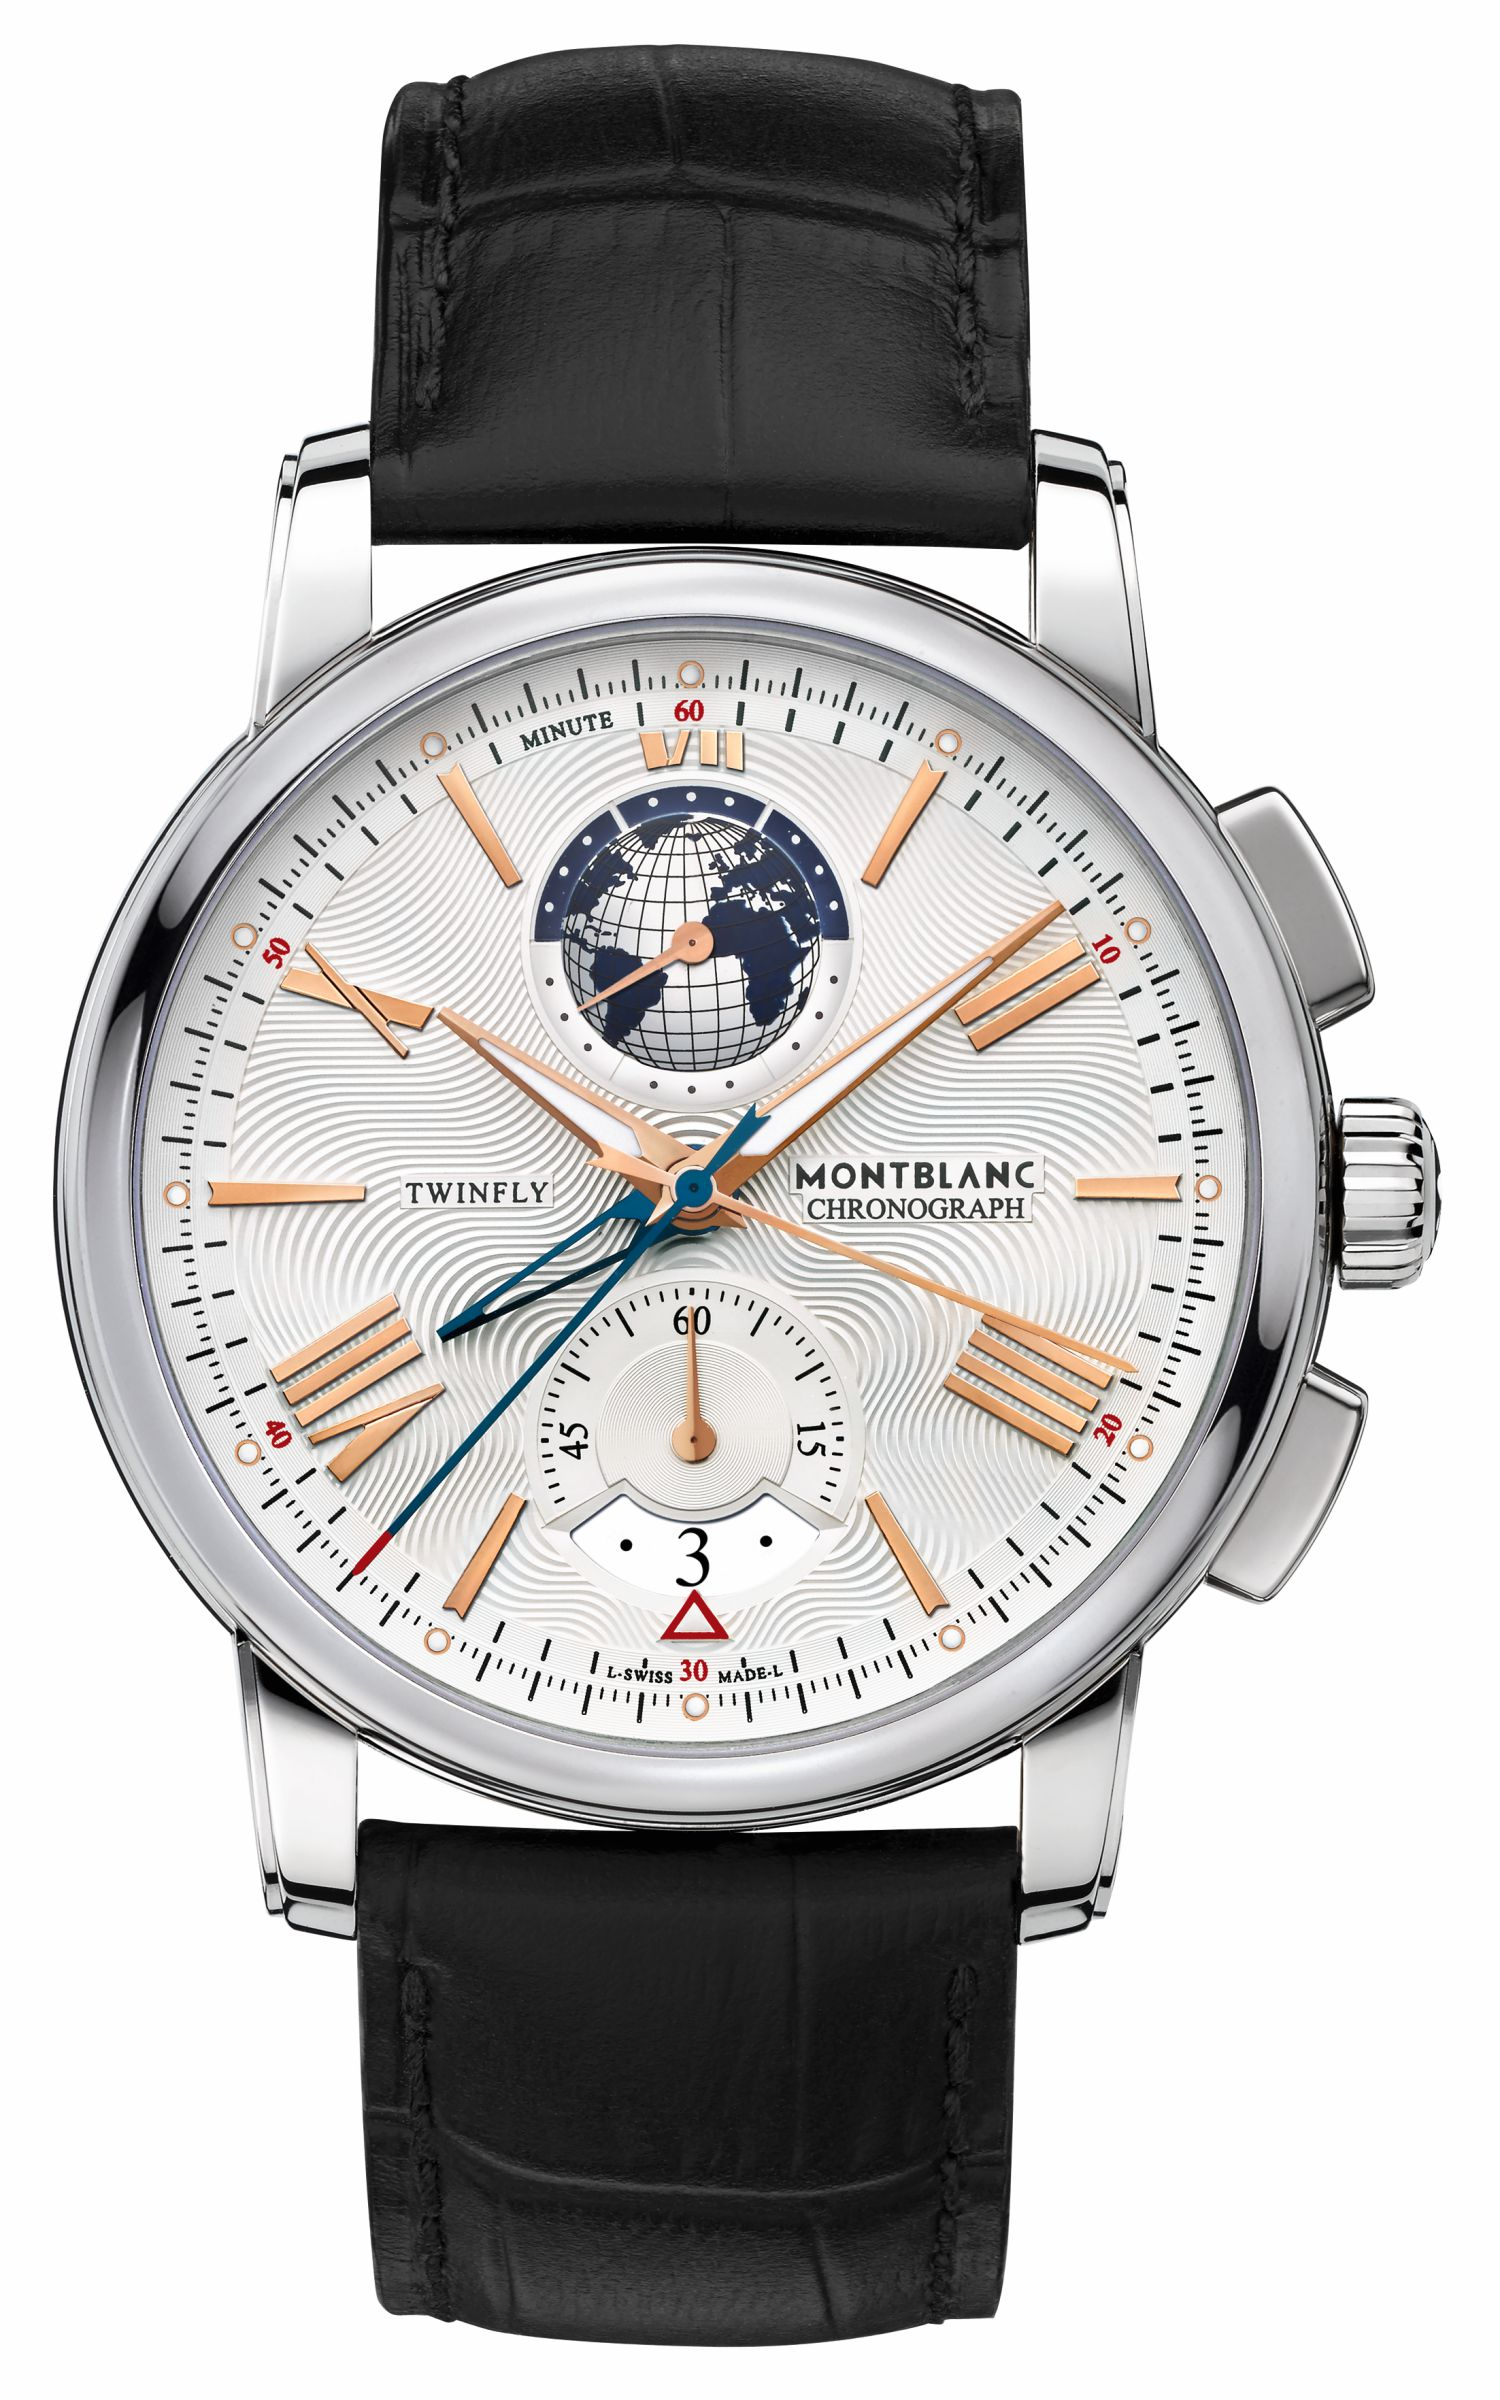 Montblanc-4810-TwinFly-Chronograph-110-Years-Edition-1.jpg